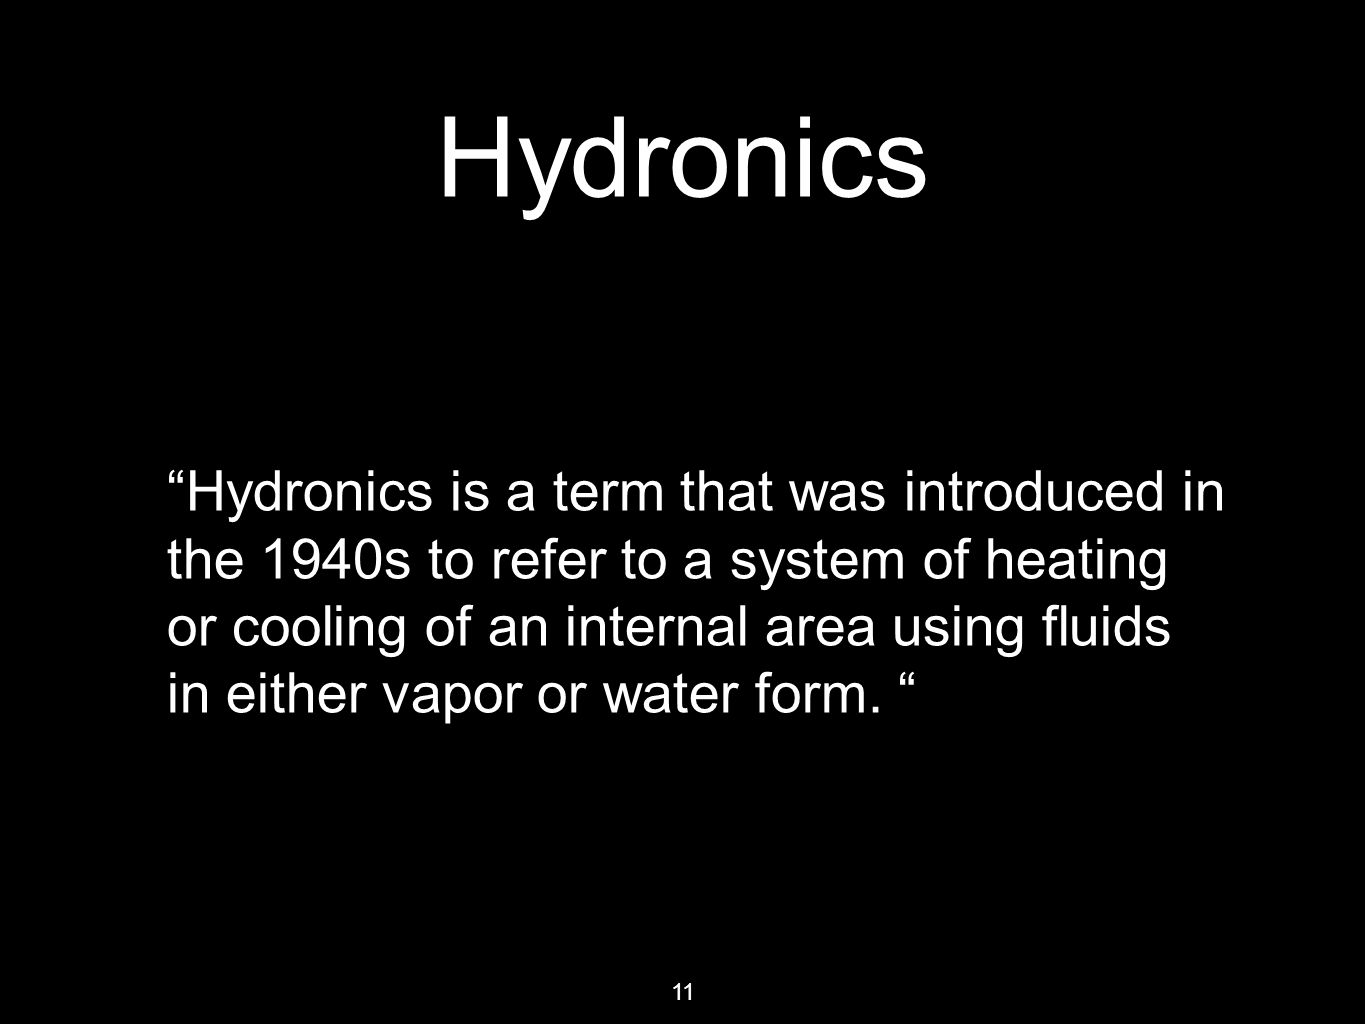 11 Hydronics Hydronics is a term that was introduced in the 1940s to refer to a system of heating or cooling of an internal area using fluids in either vapor or water form.